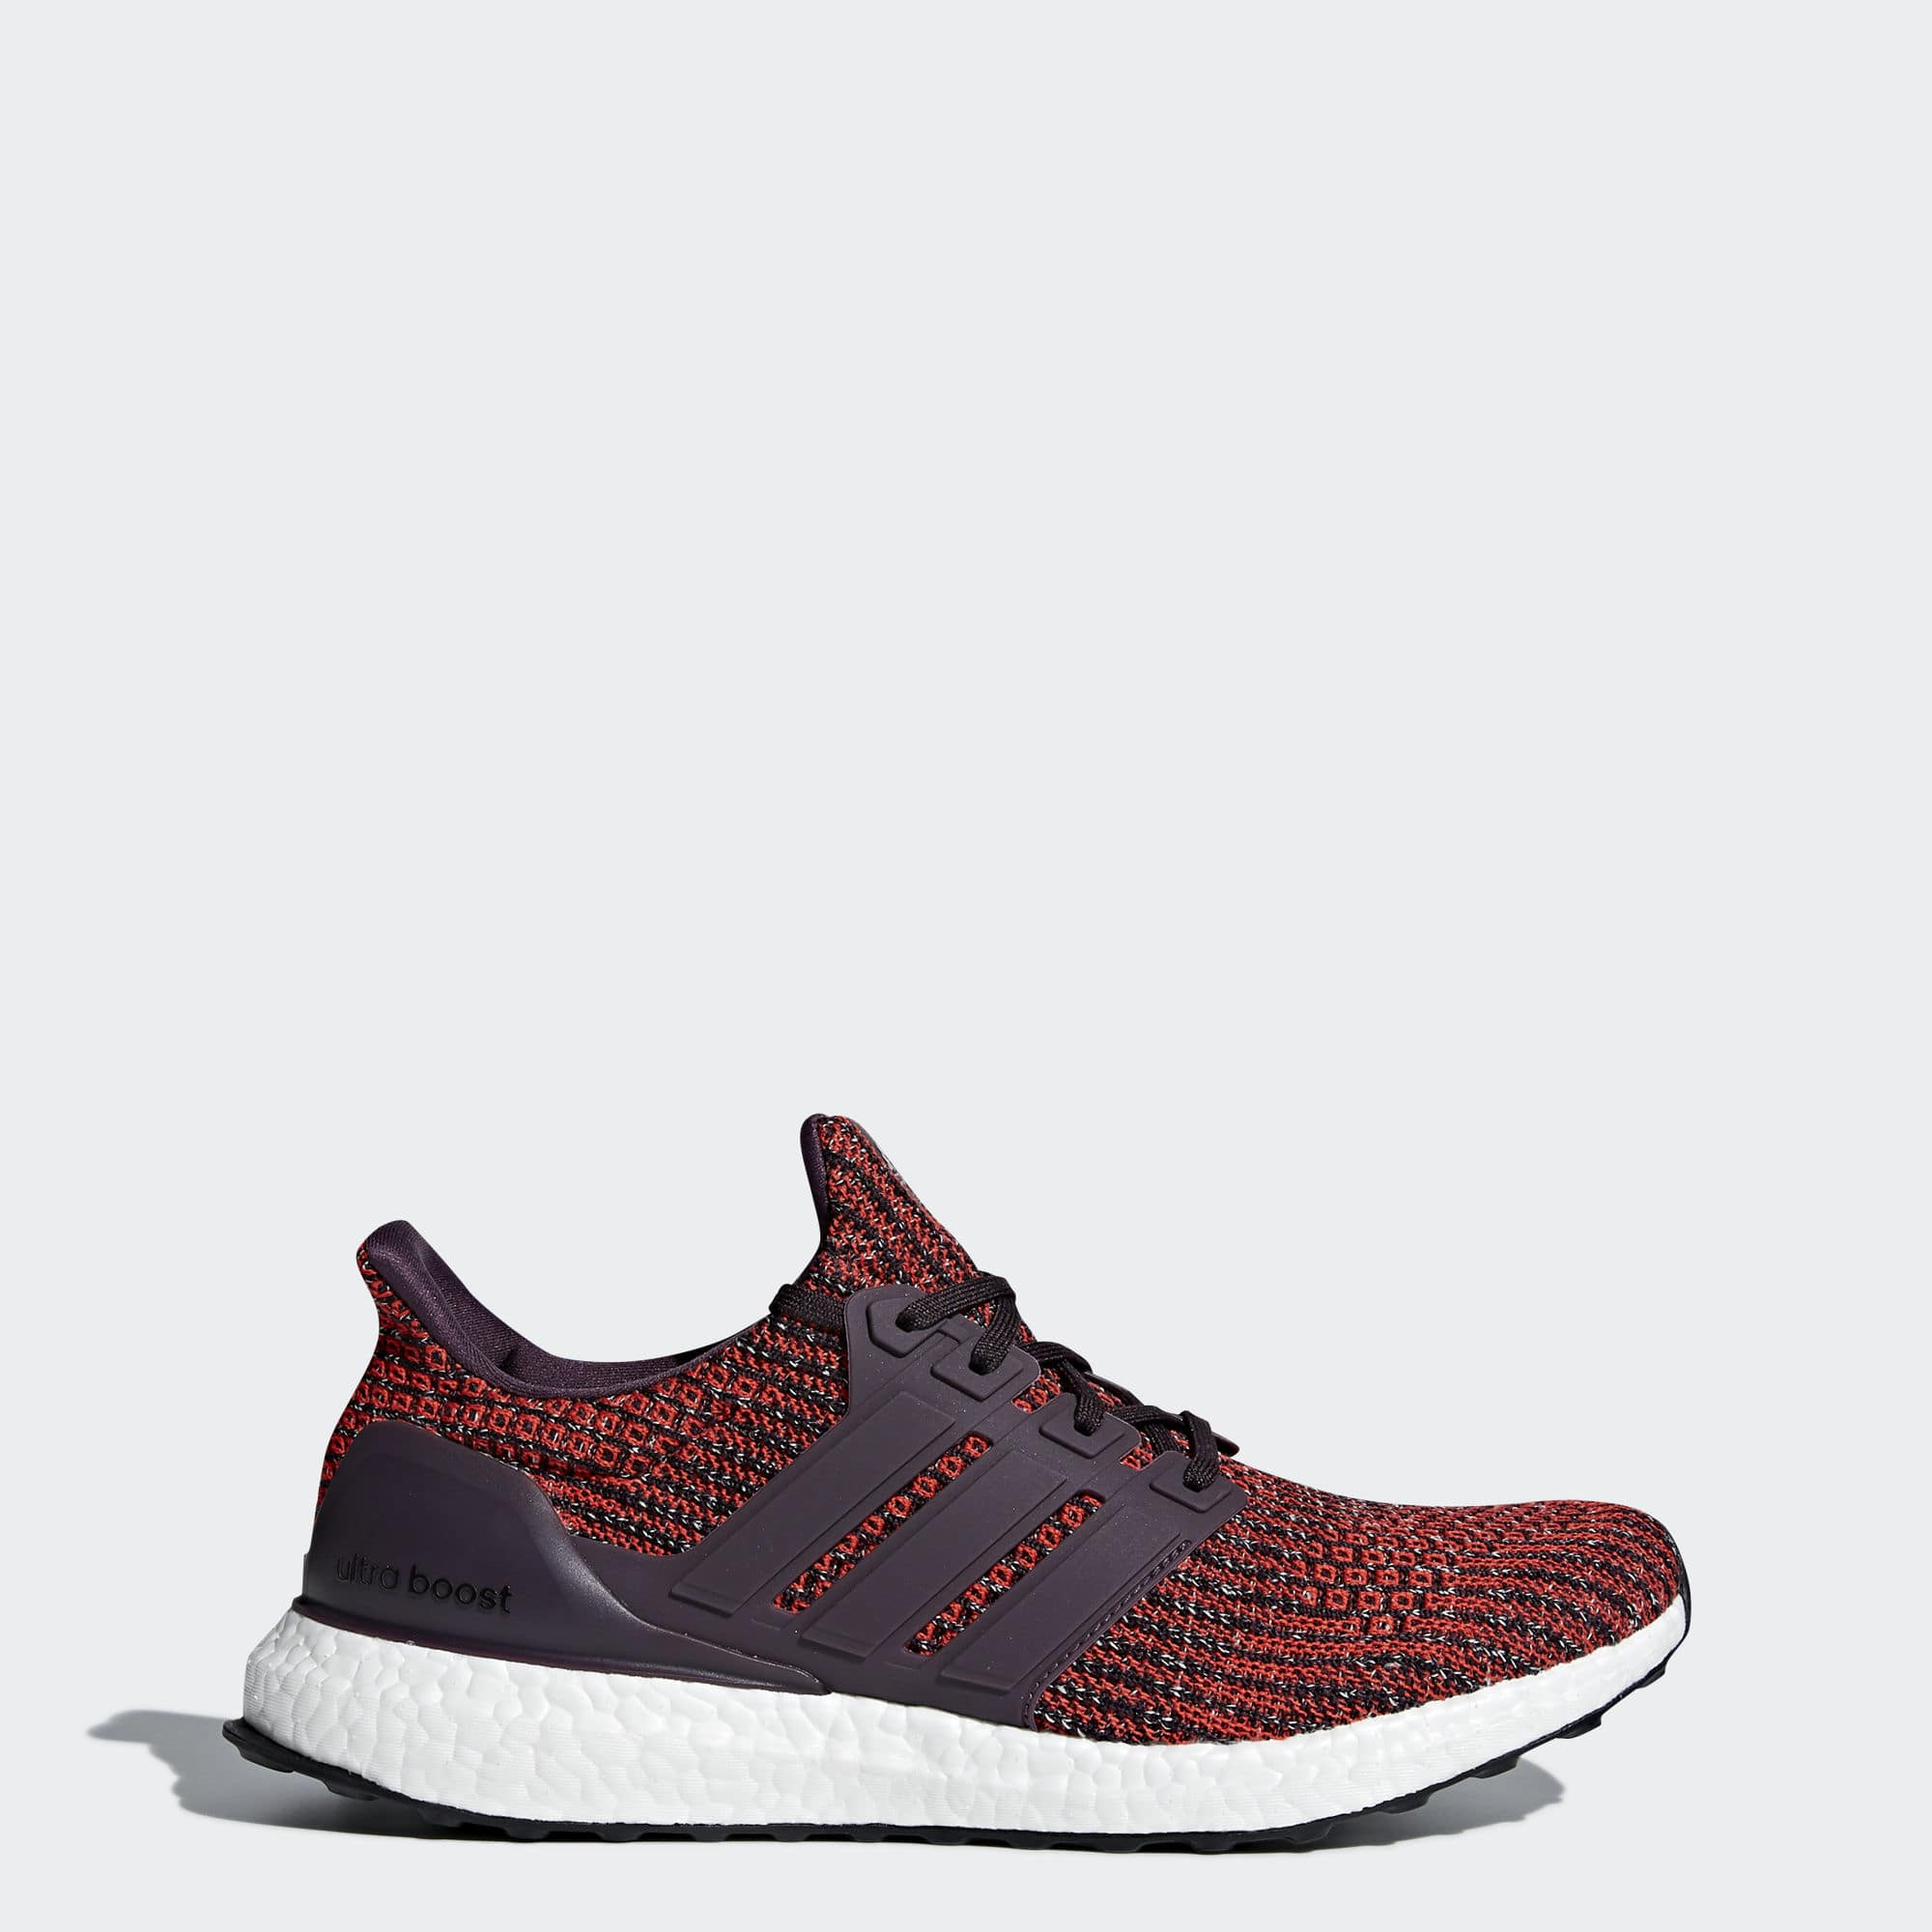 brand new 41786 9684c Adidas Men's Ultraboost 4.0 (Noble Red) $88, Women's I-5923 ...